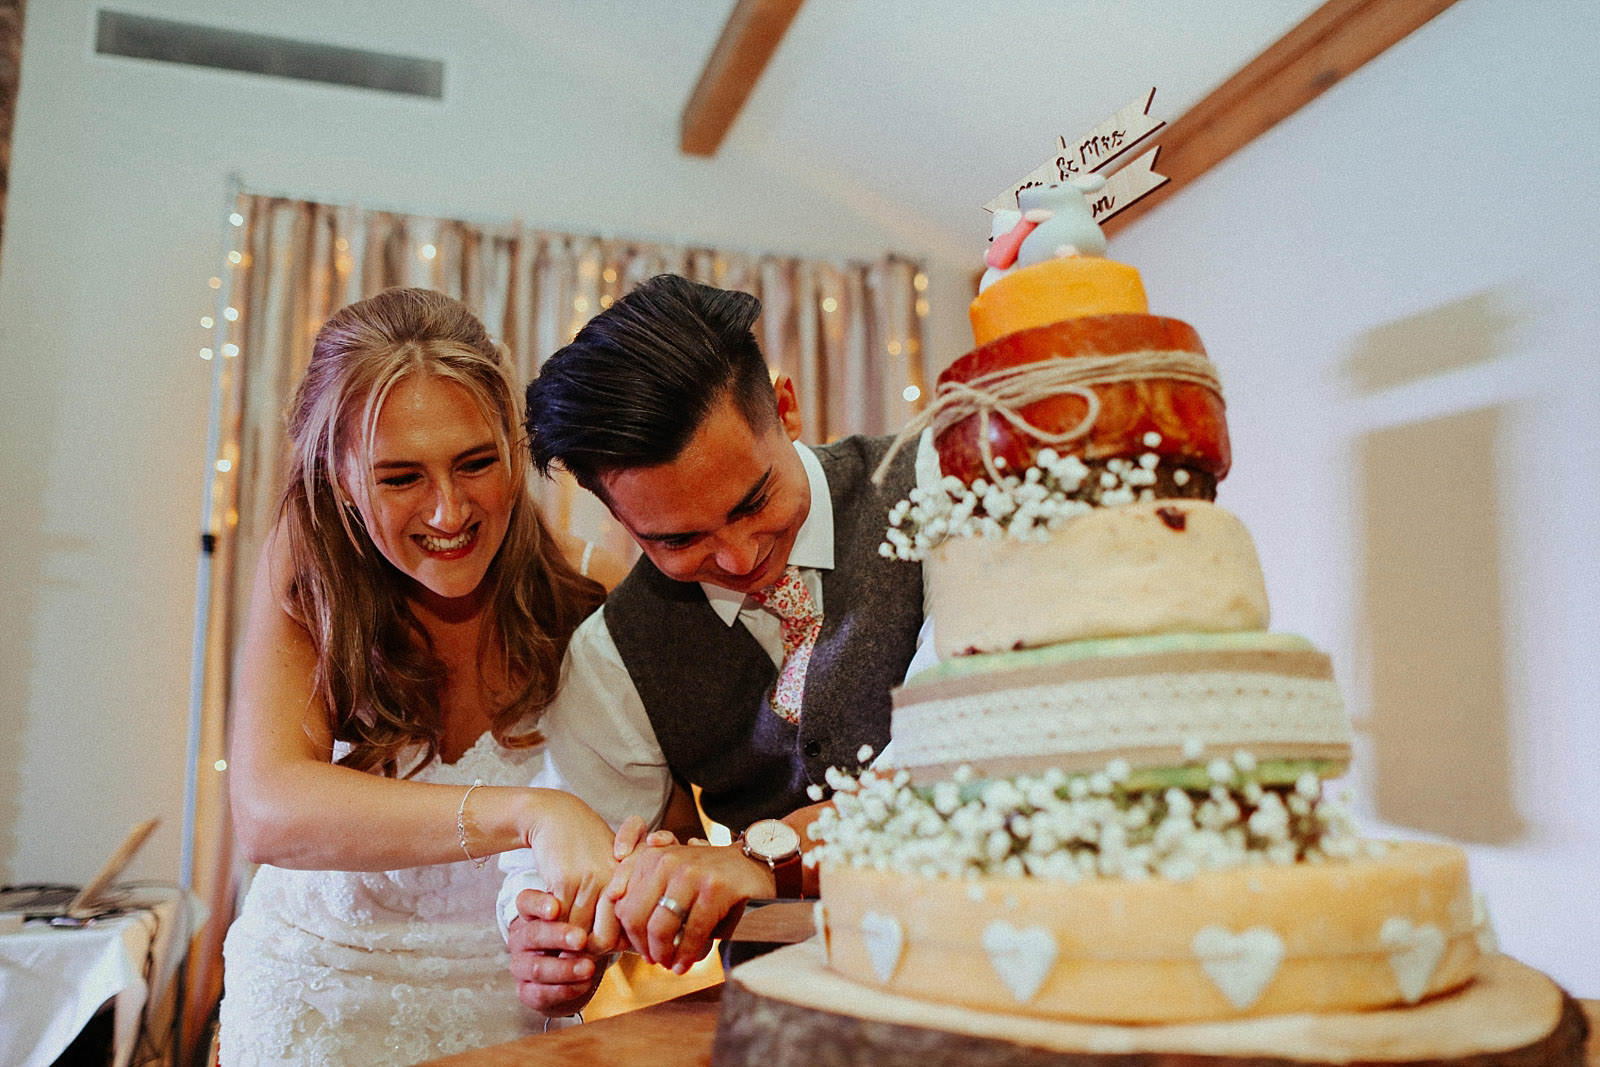 bride and groom find it hard to cut their wedding cake